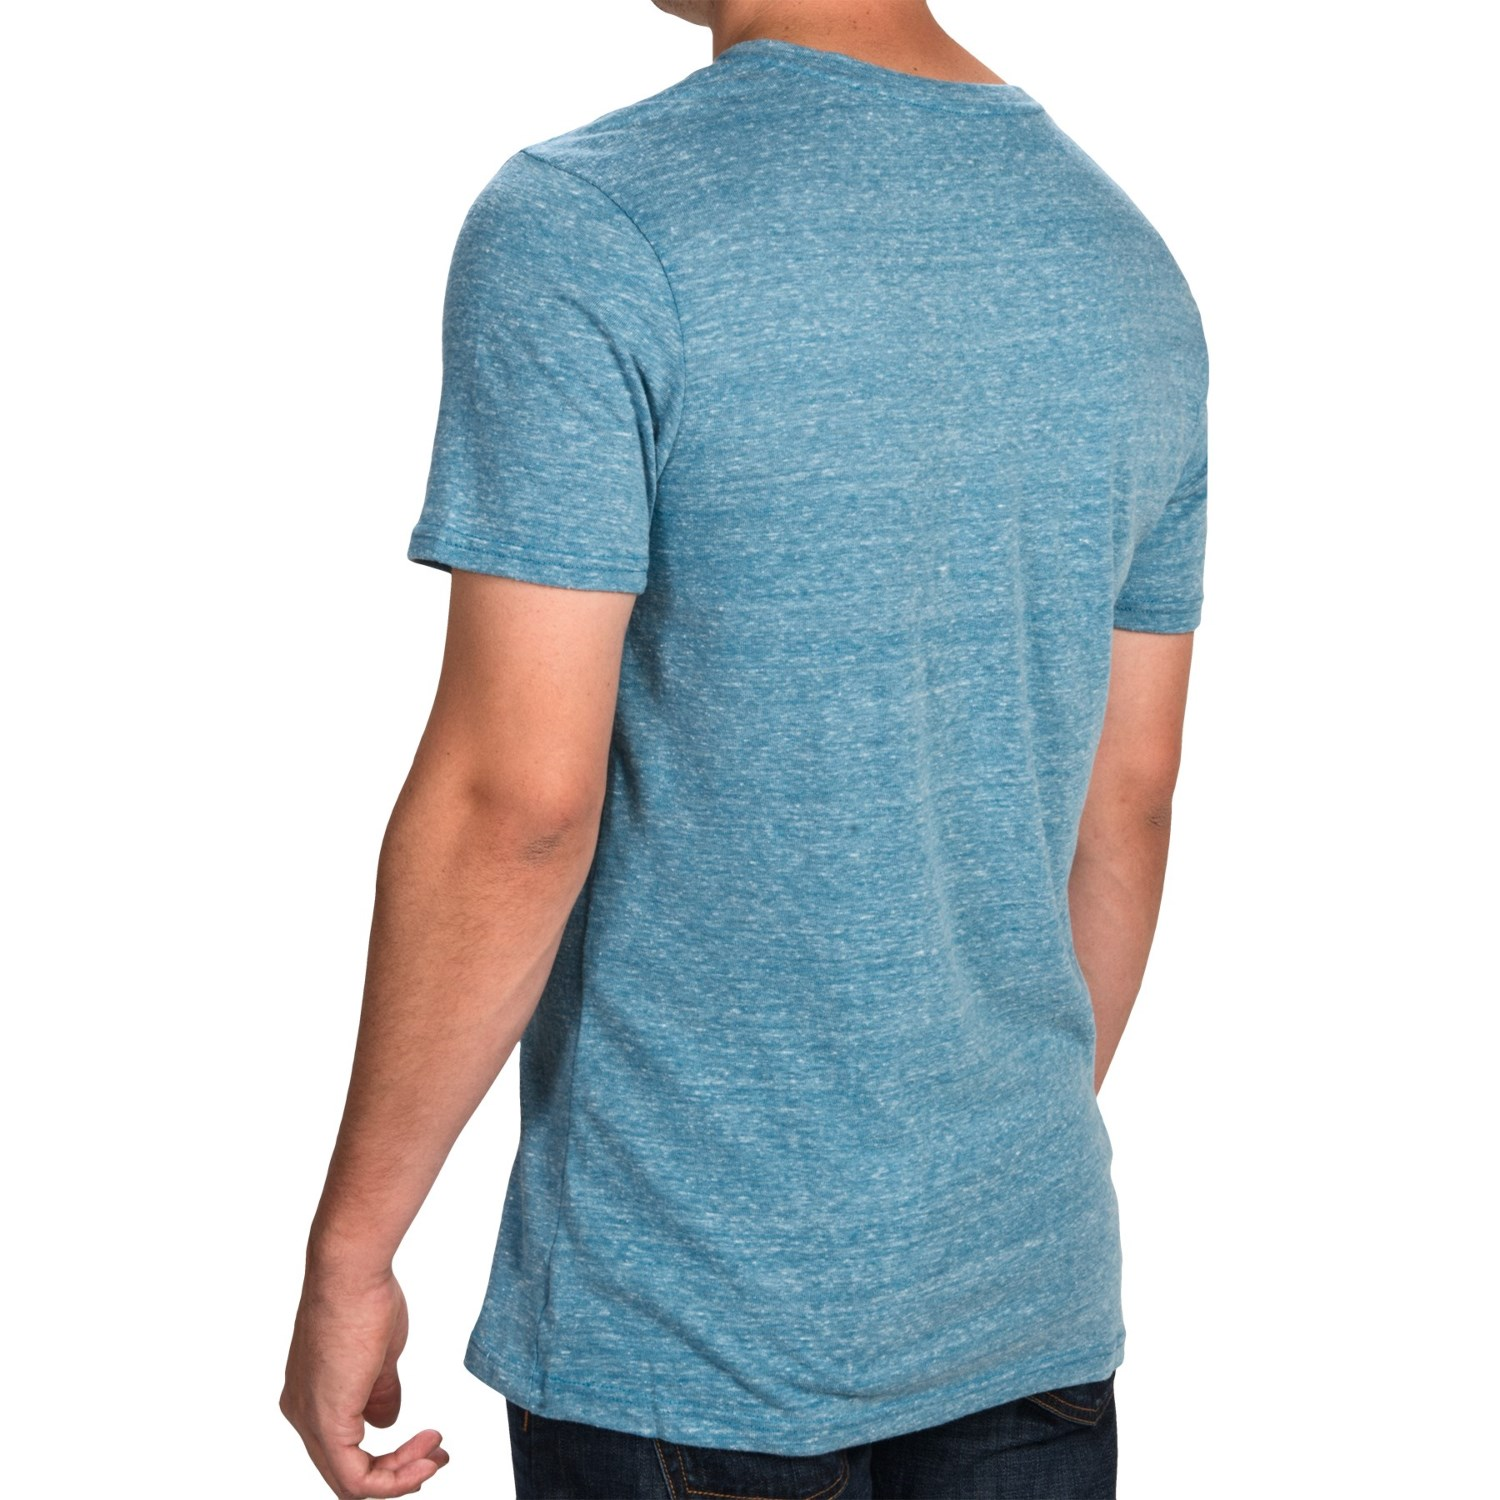 Slub knit t shirt for men 9532g save 64 for Short sleeved shirts for men